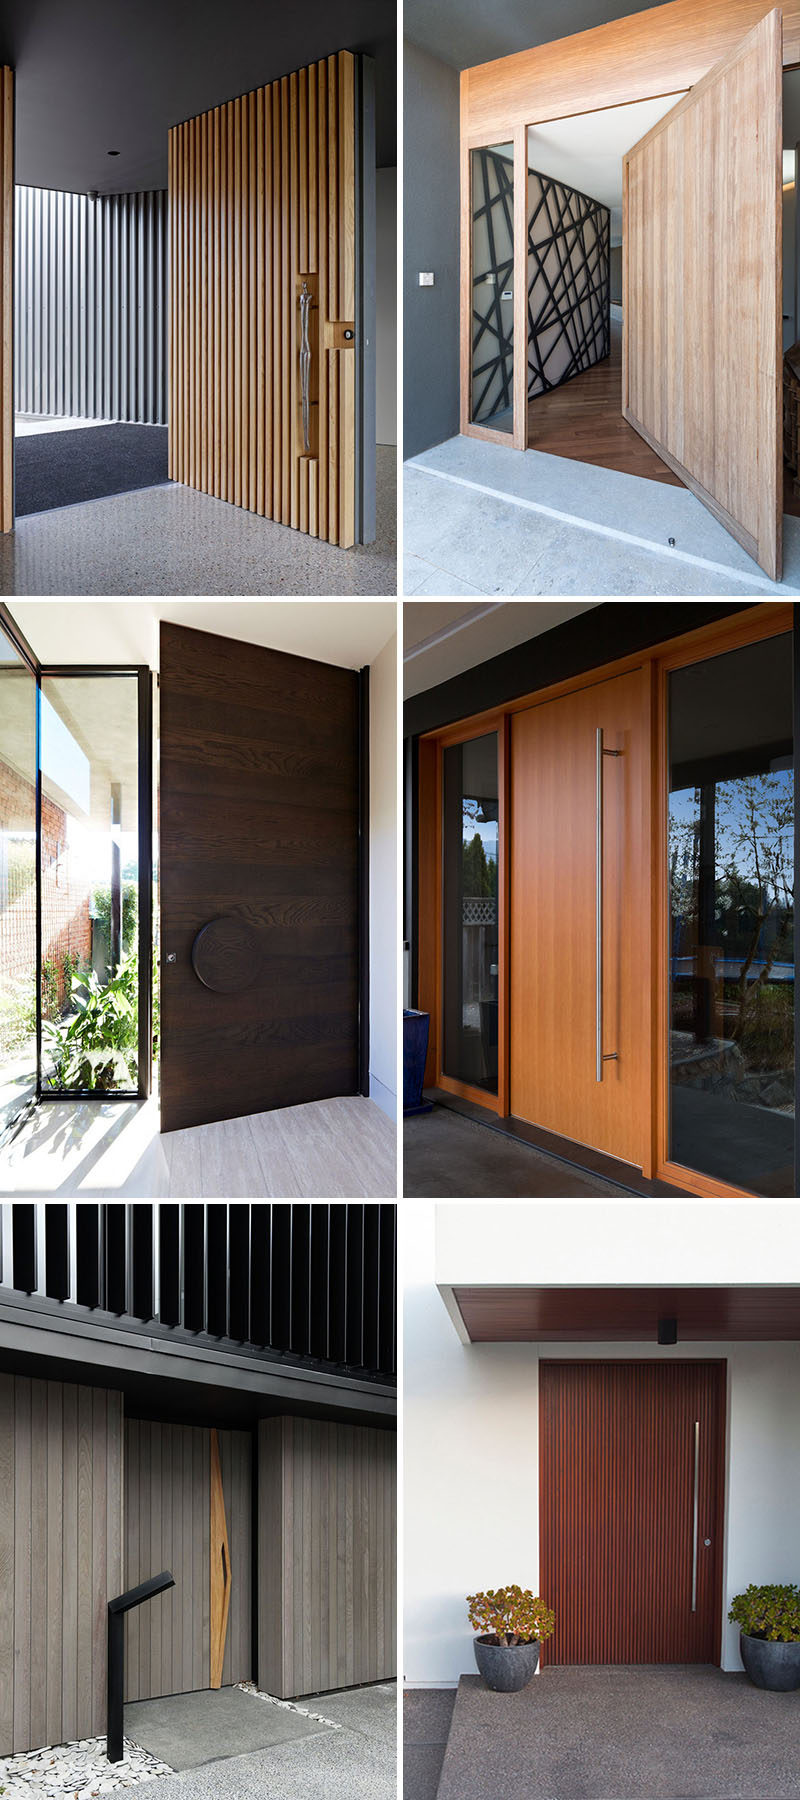 Doors Design: These 13 Sophisticated Modern Wood Door Designs Add A Warm